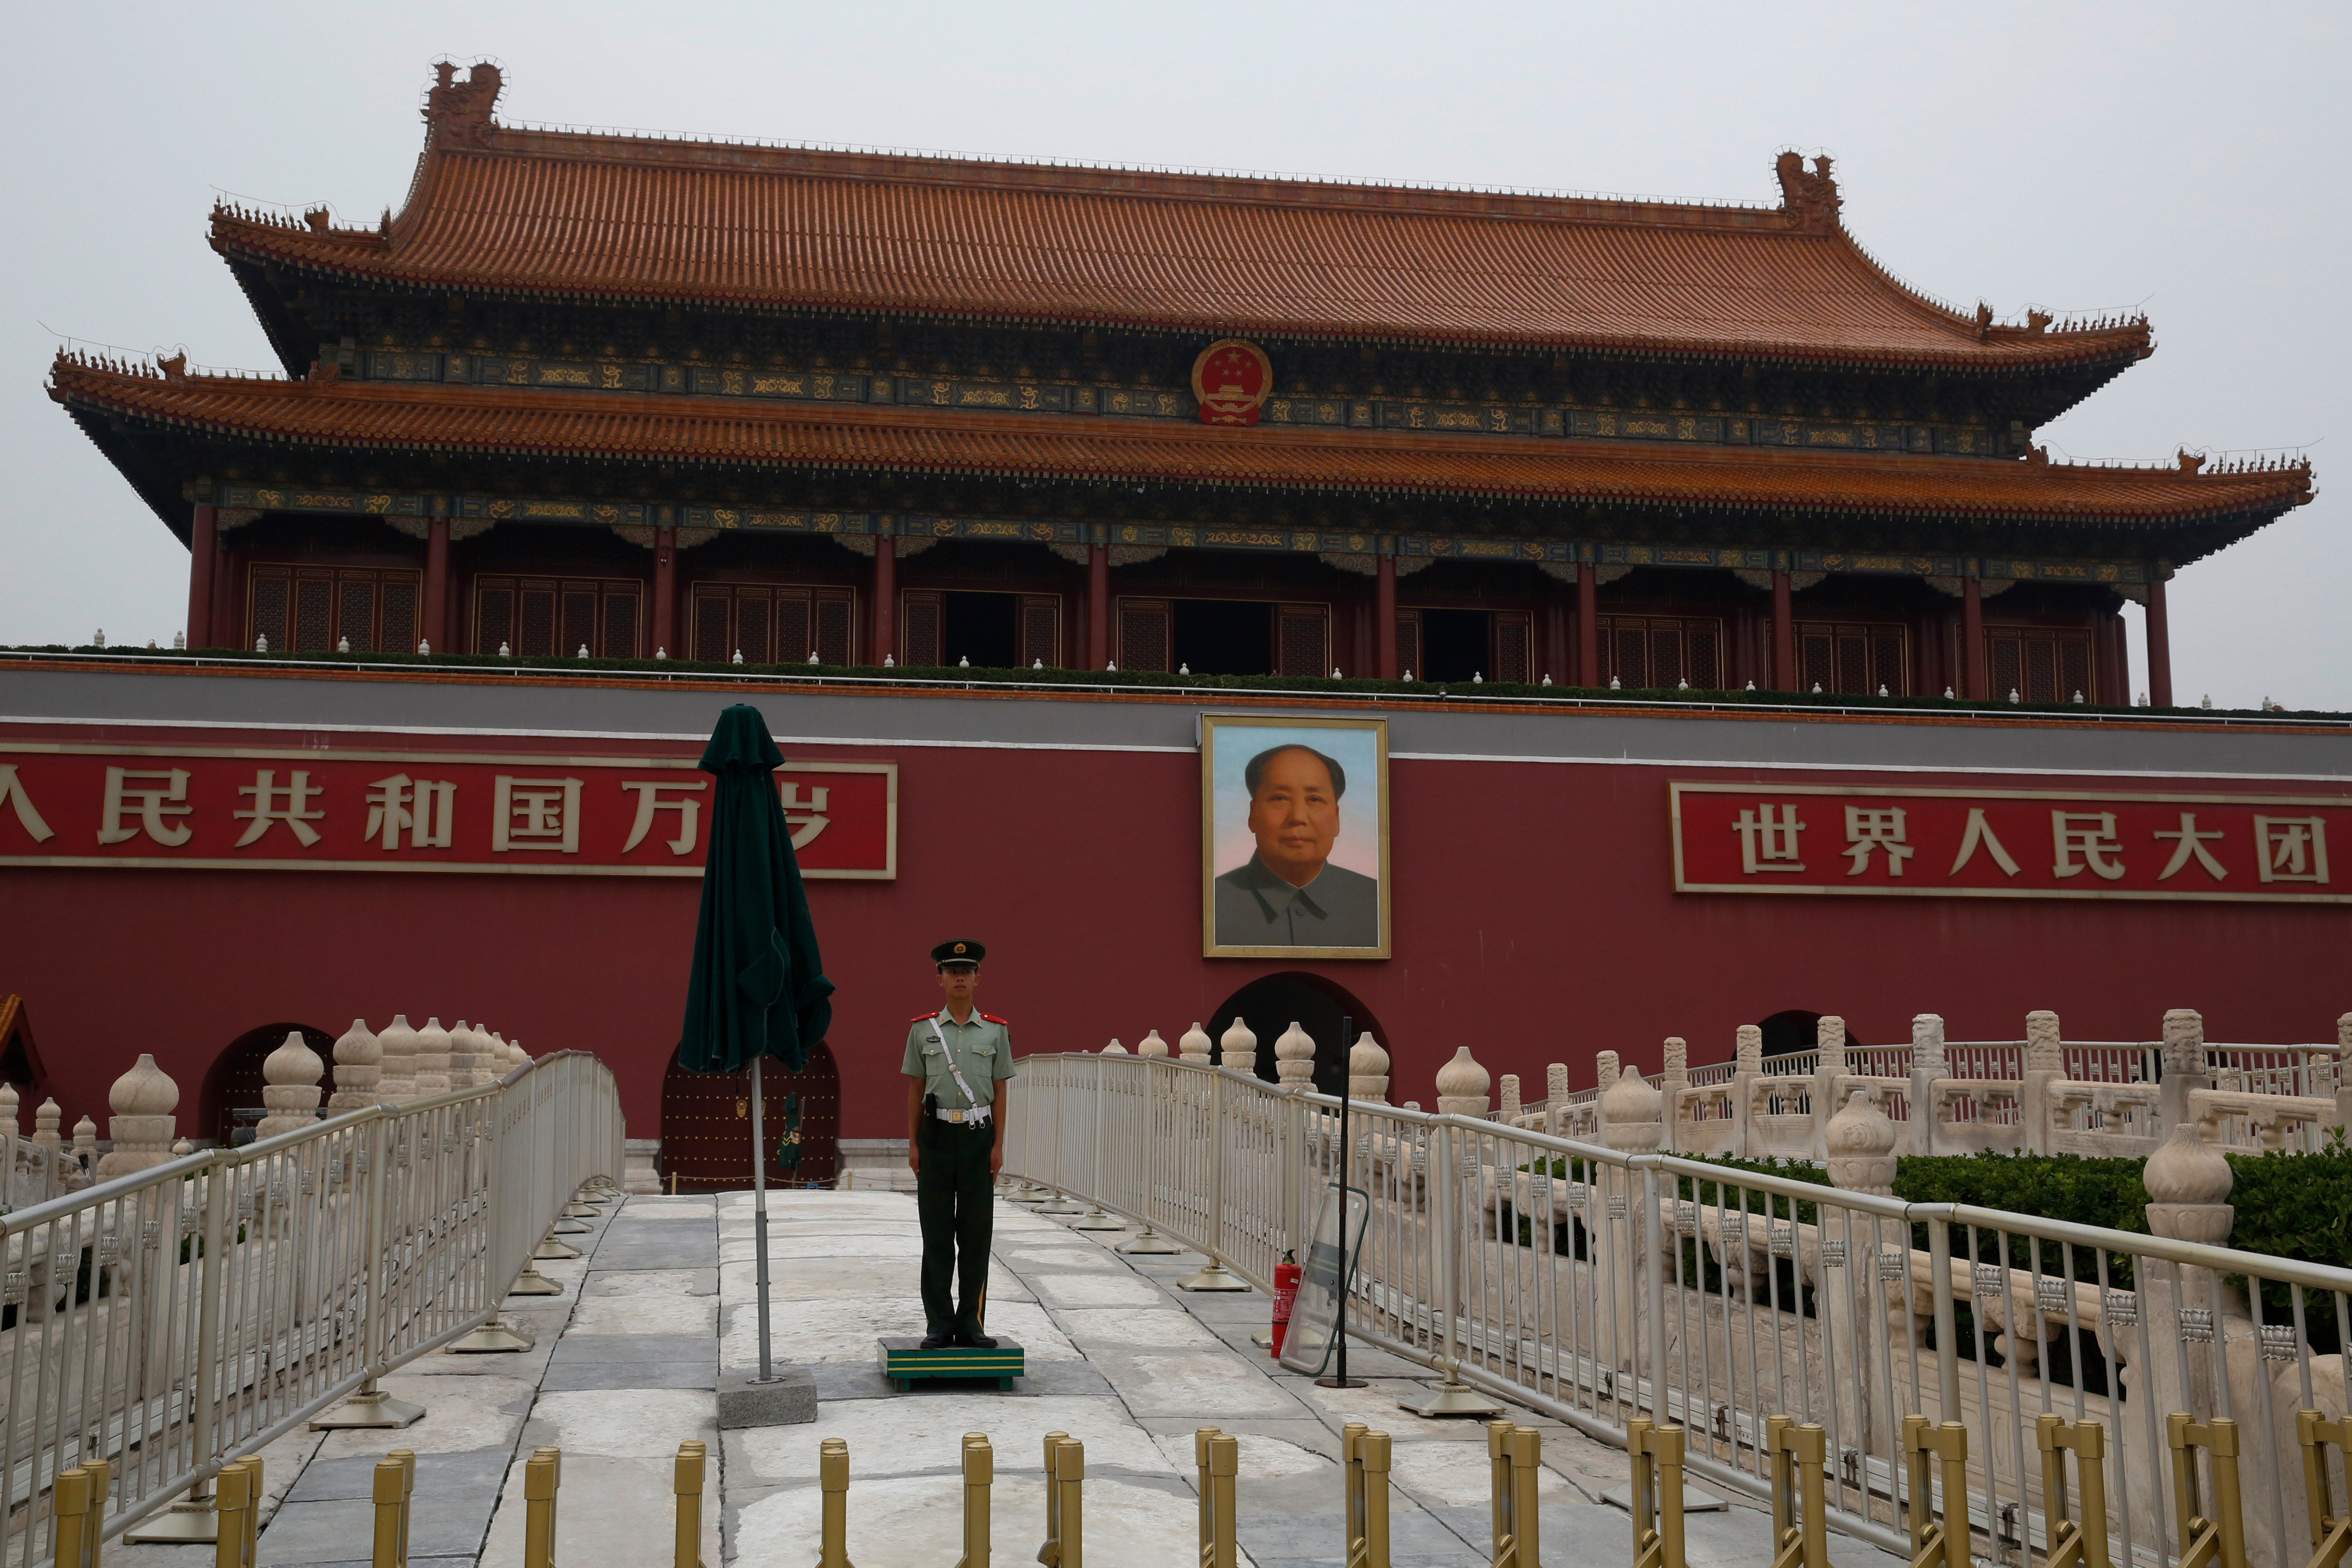 A member of the Chinese People's Liberation Army stands guard in front of a portrait of former Chinese leader Mao Zedong in Tiananmen Square in Beijing on July 28, 2016. MUST CREDIT: Bloomberg photo by Luke MacGregor.